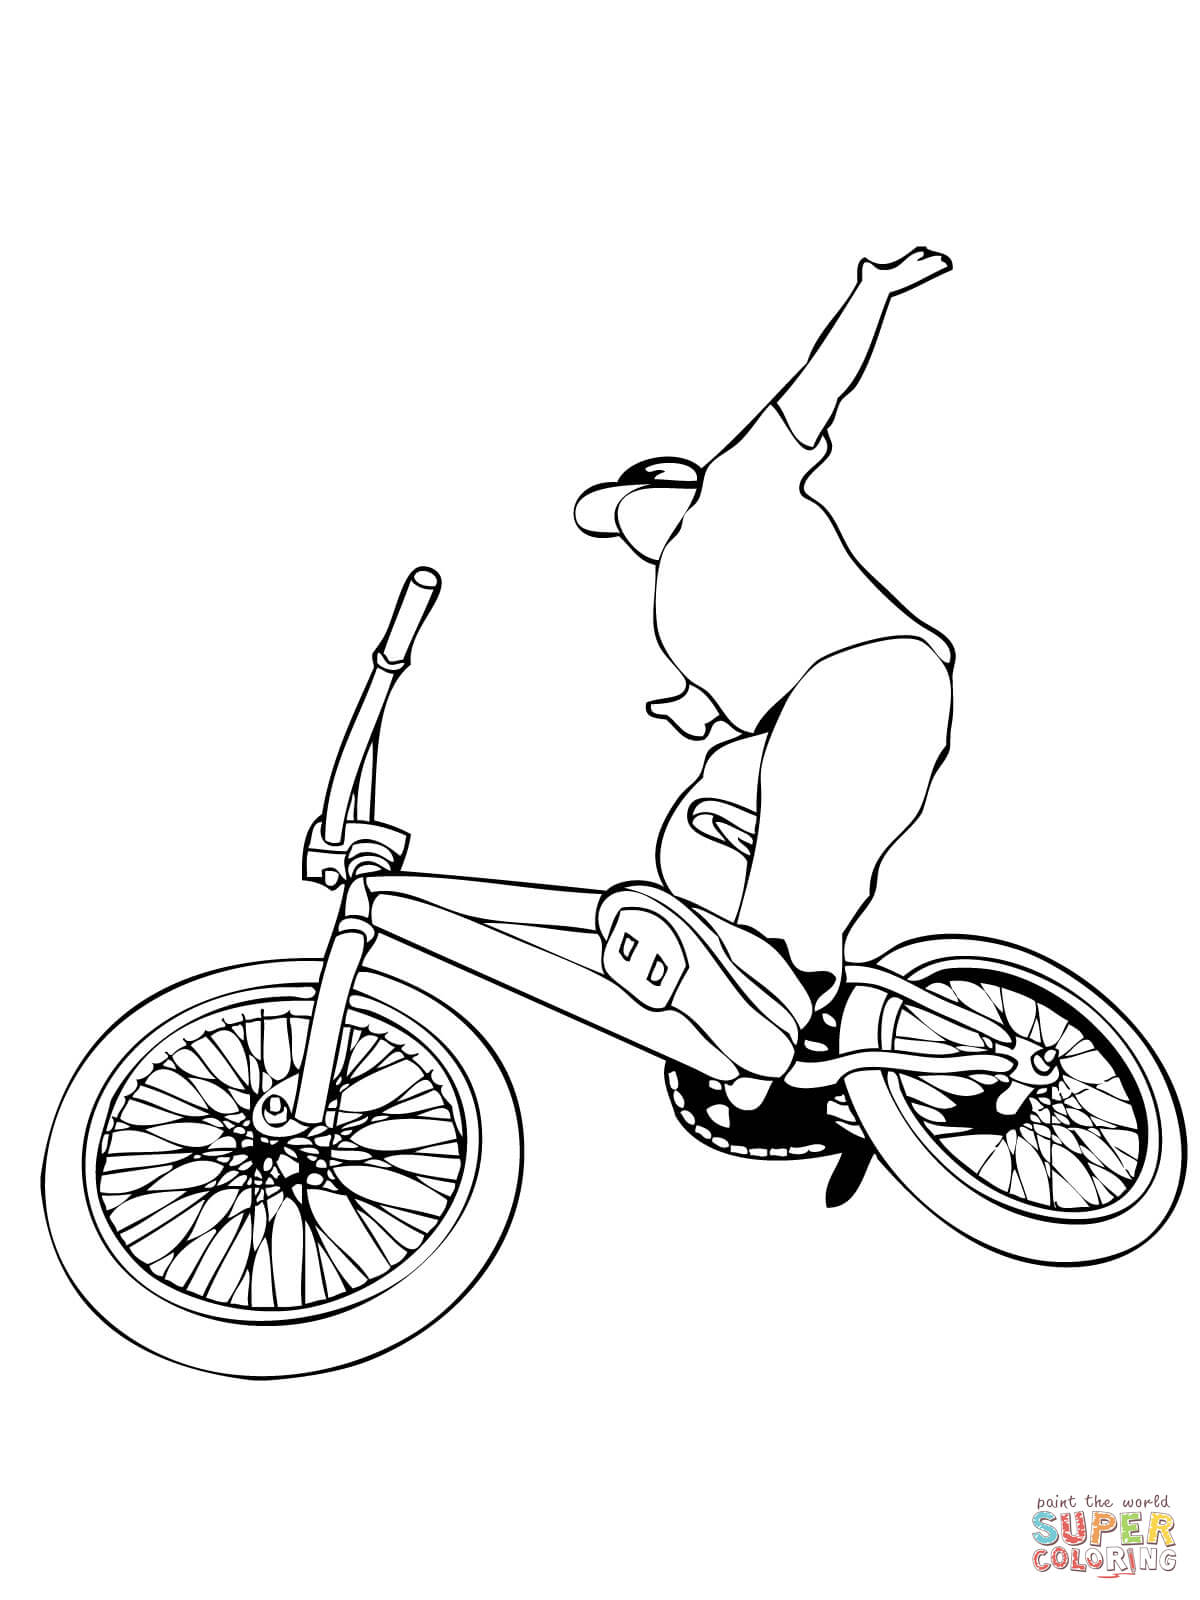 coloring pages of bikes - photo#16